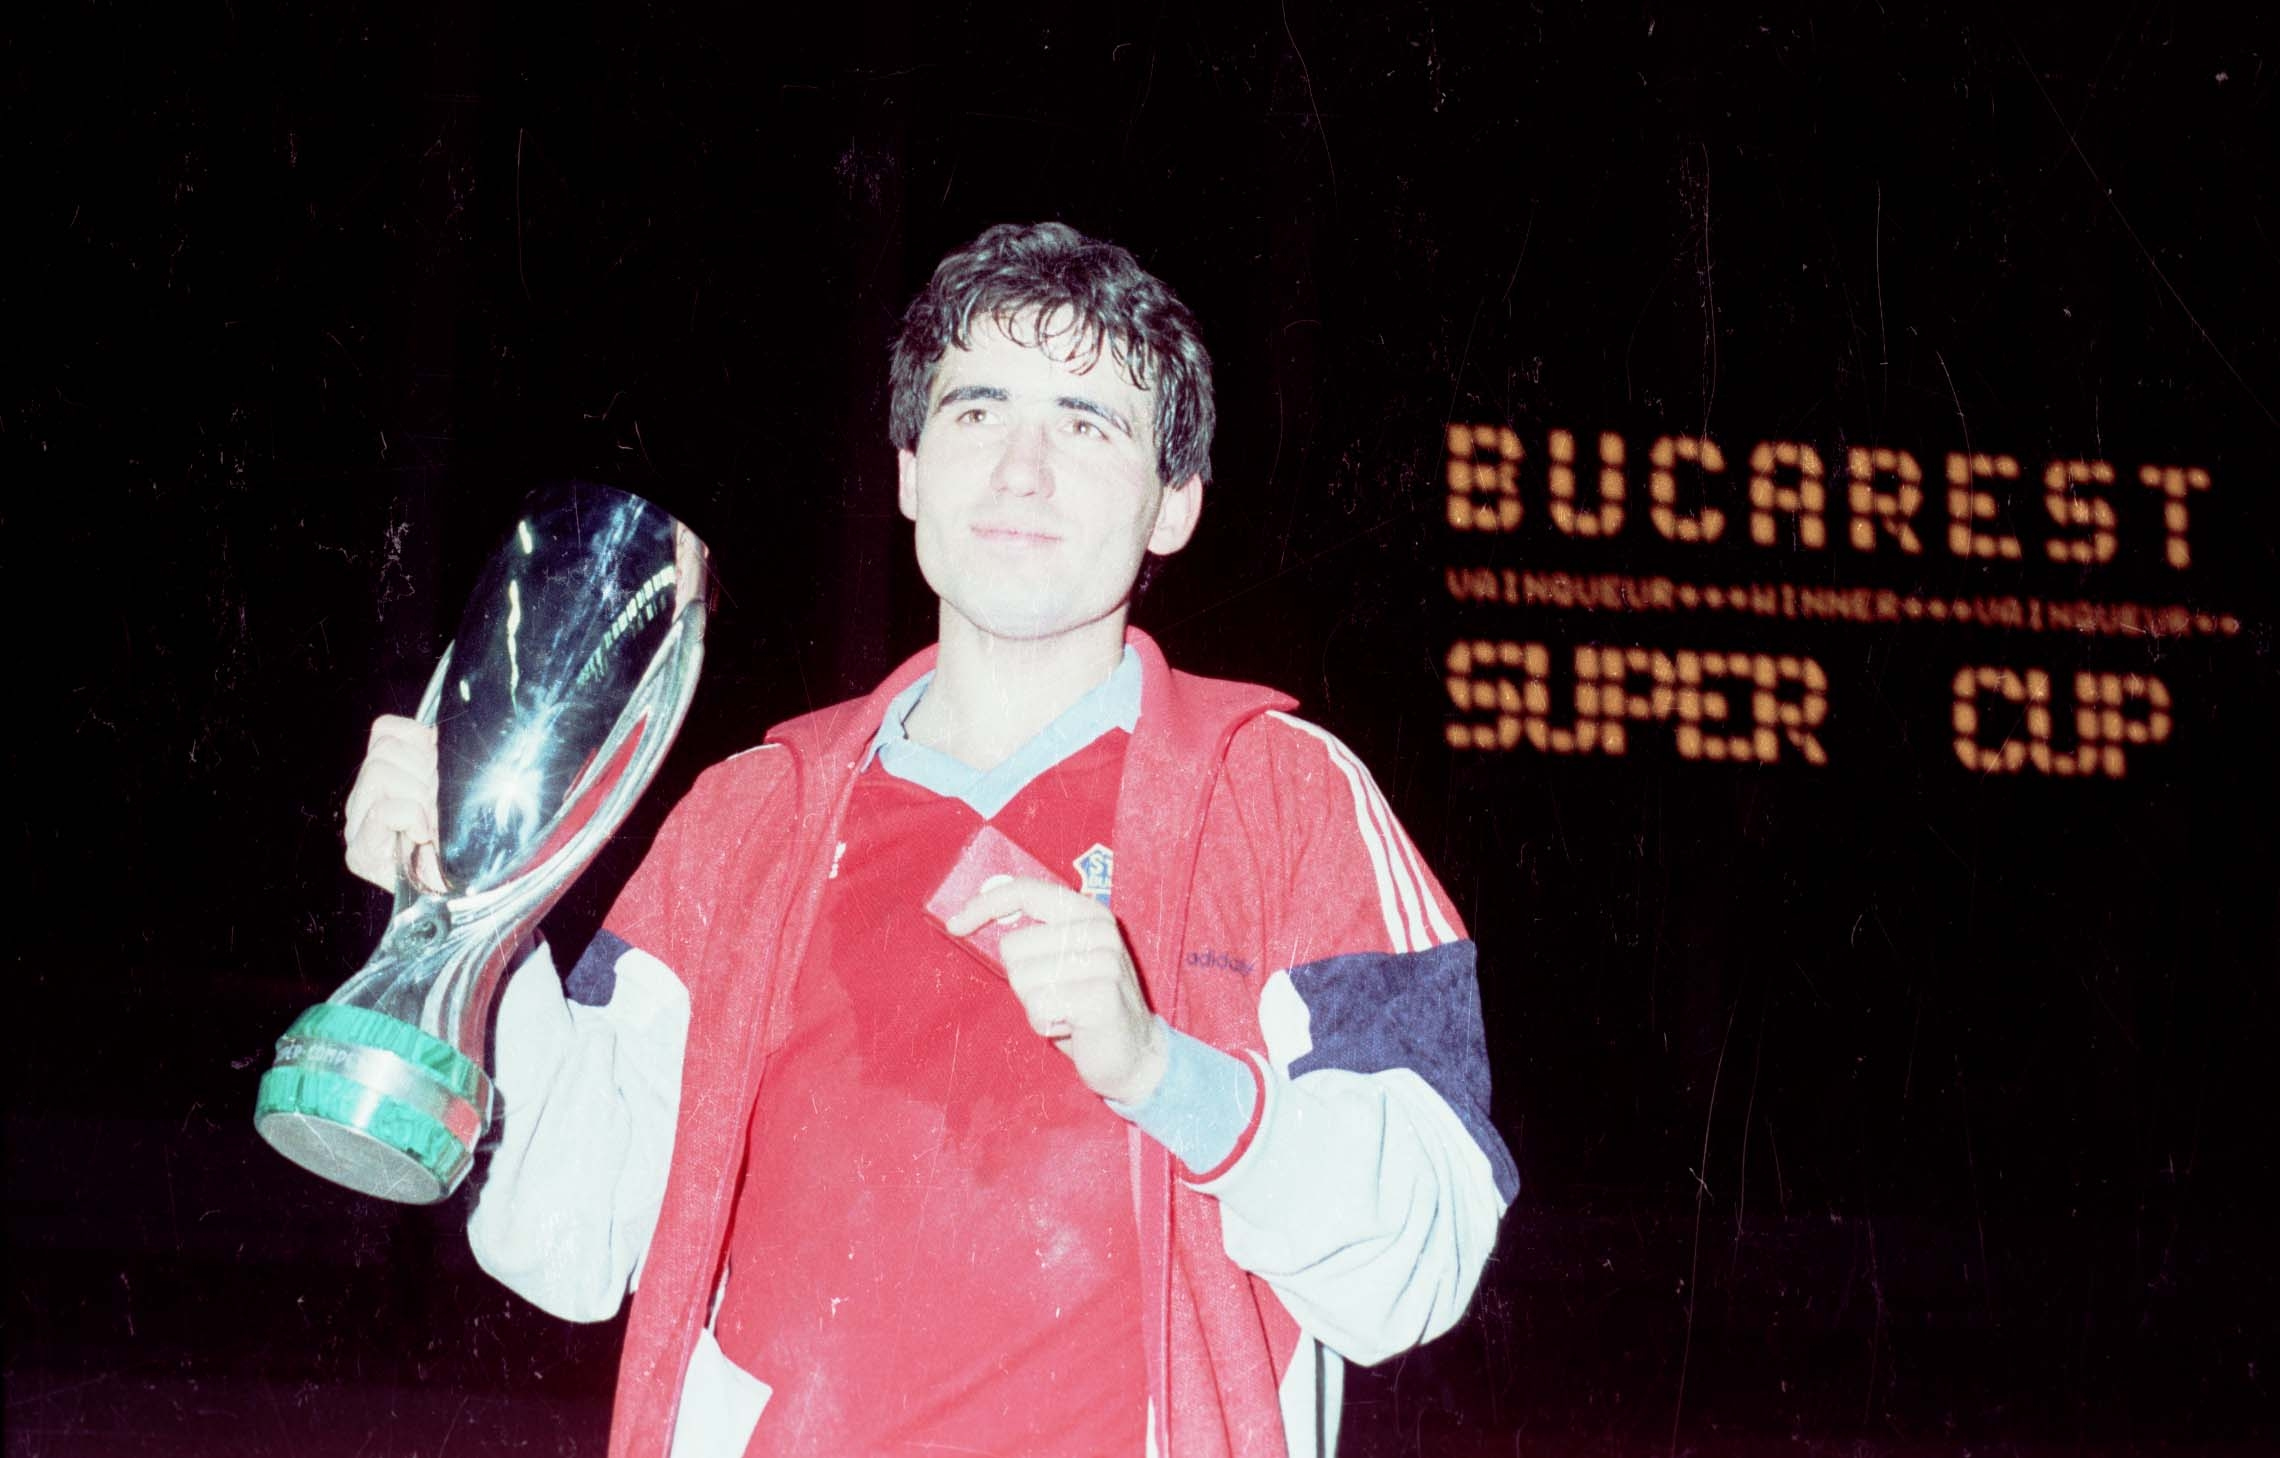 Gheorghe Hagi posing with the UEFA Super Cup, a trophy won thanks to his free kick goal against Dinamo Kiev, on February 24th 1987